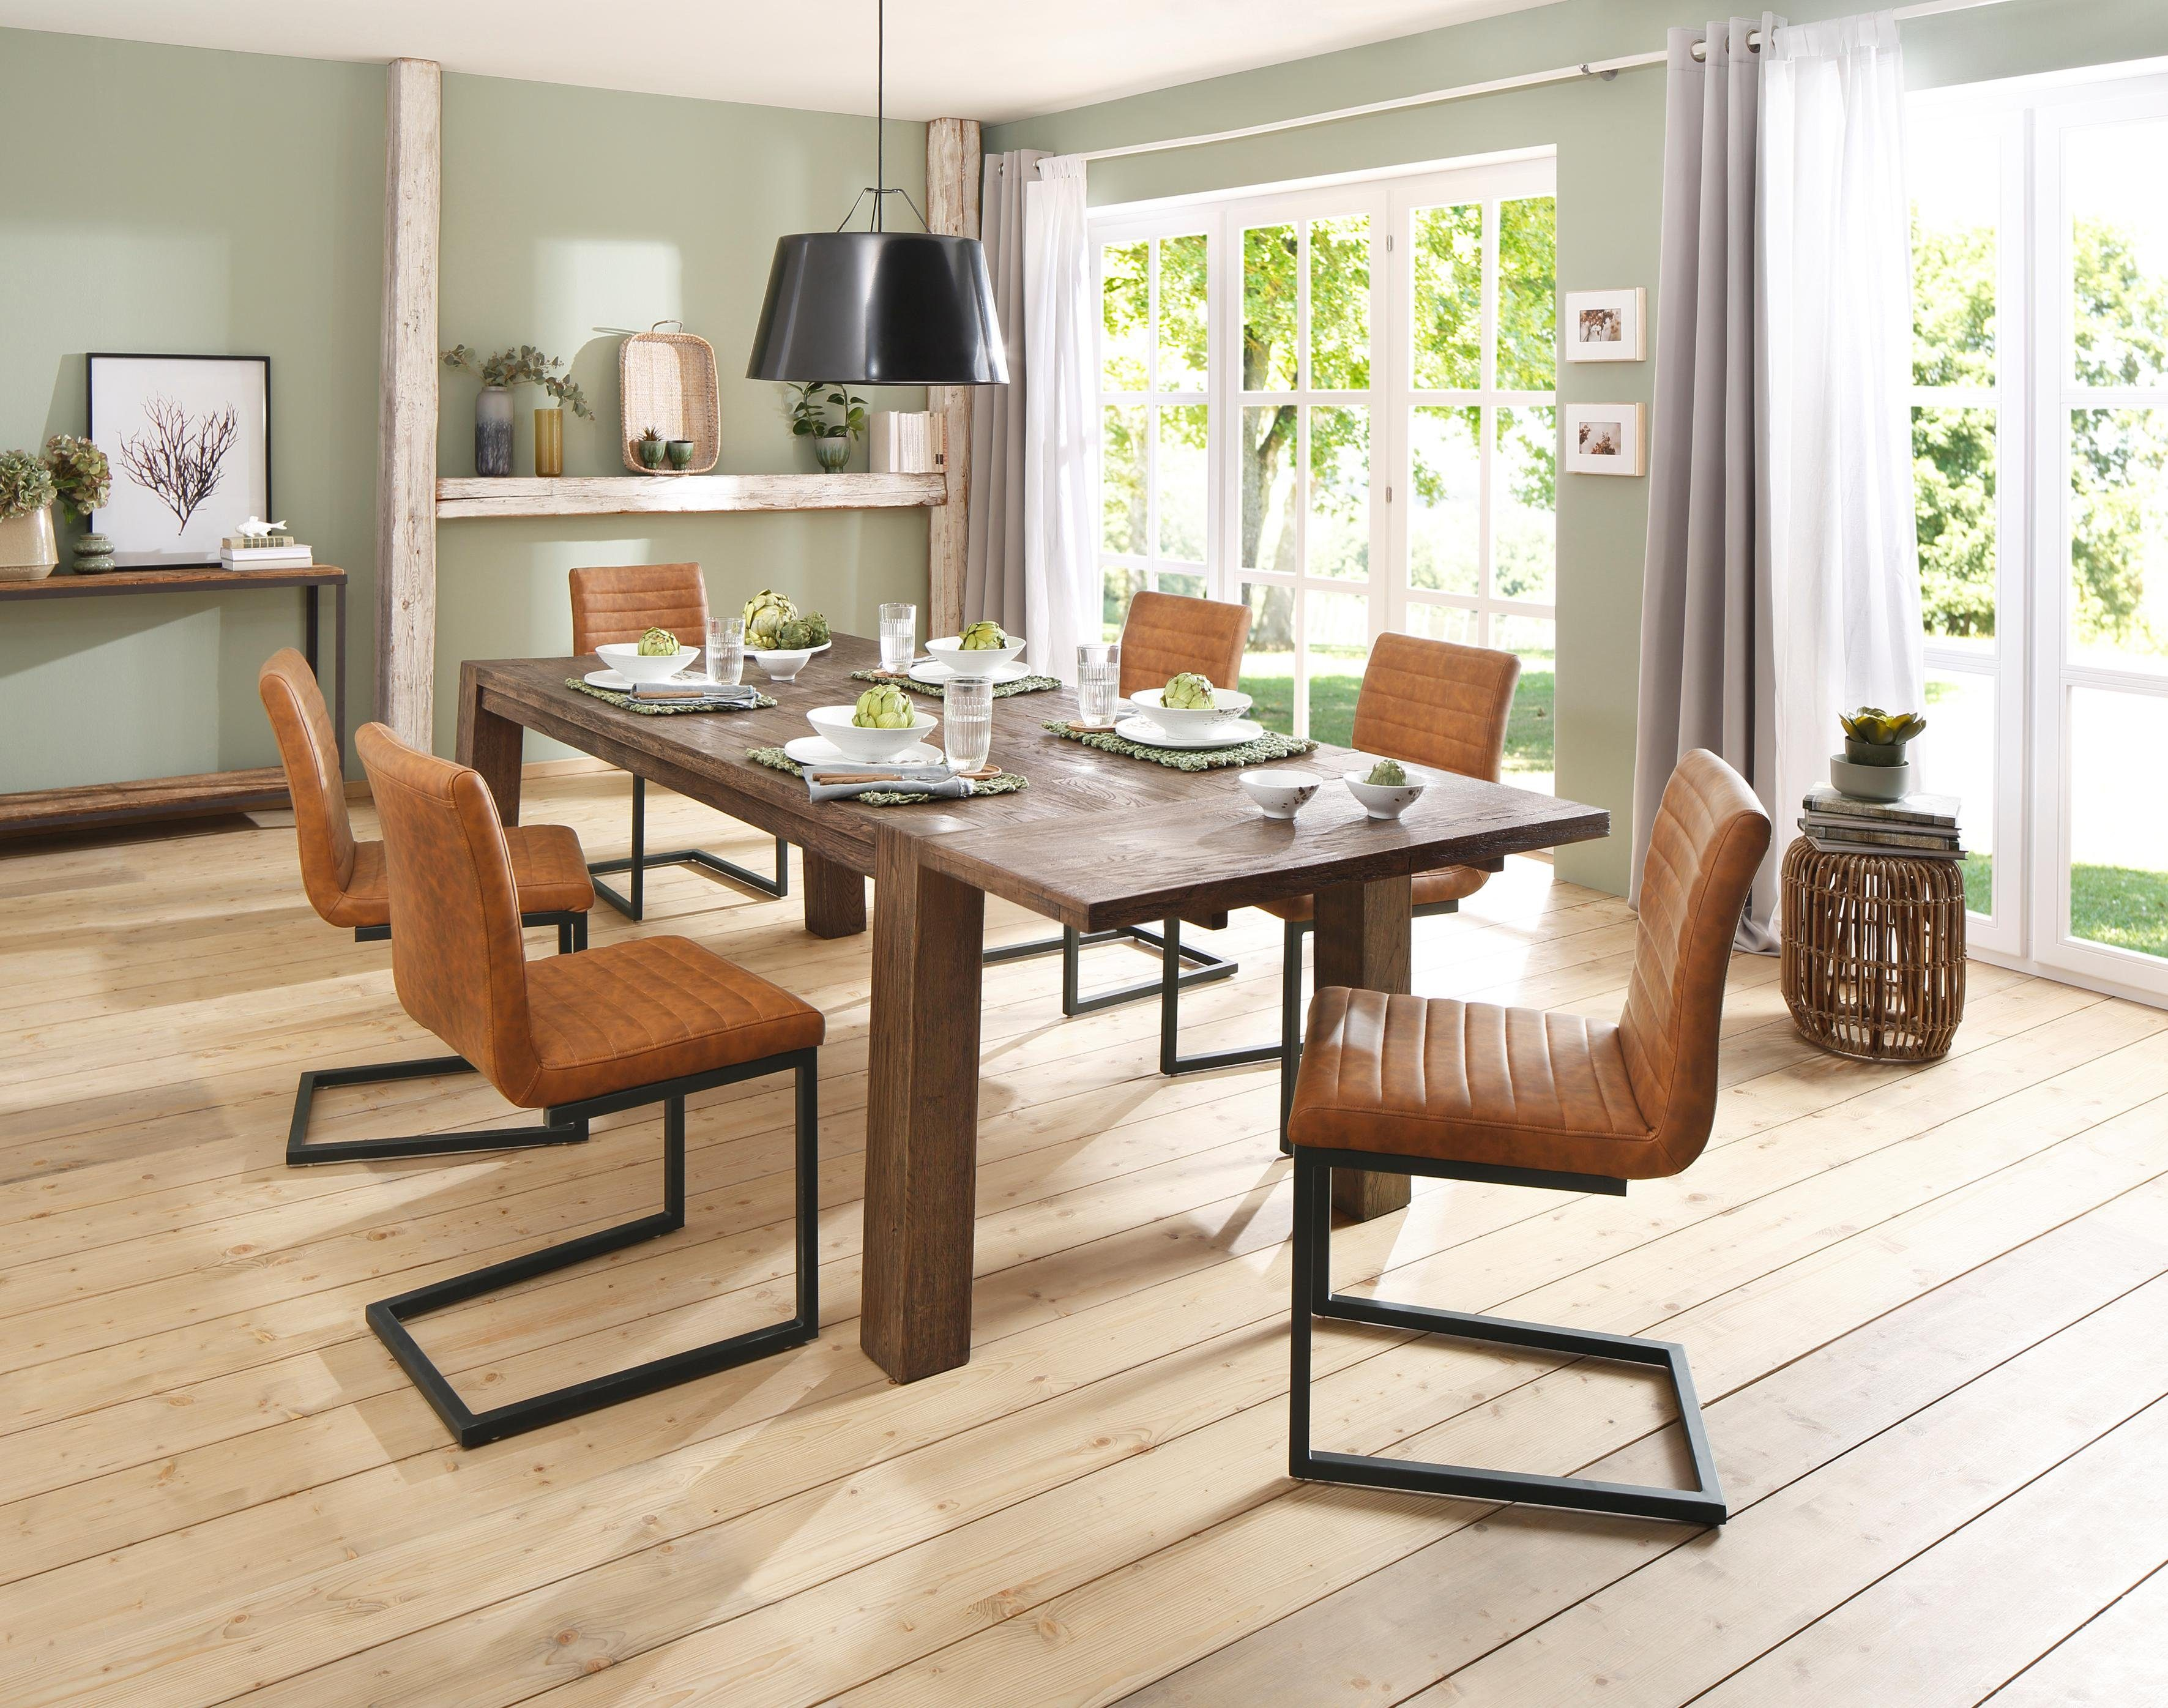 Essgruppe Home Affaire Home Affaire Essgruppe »alberte«, (set, 7 Tlg), Bestehend